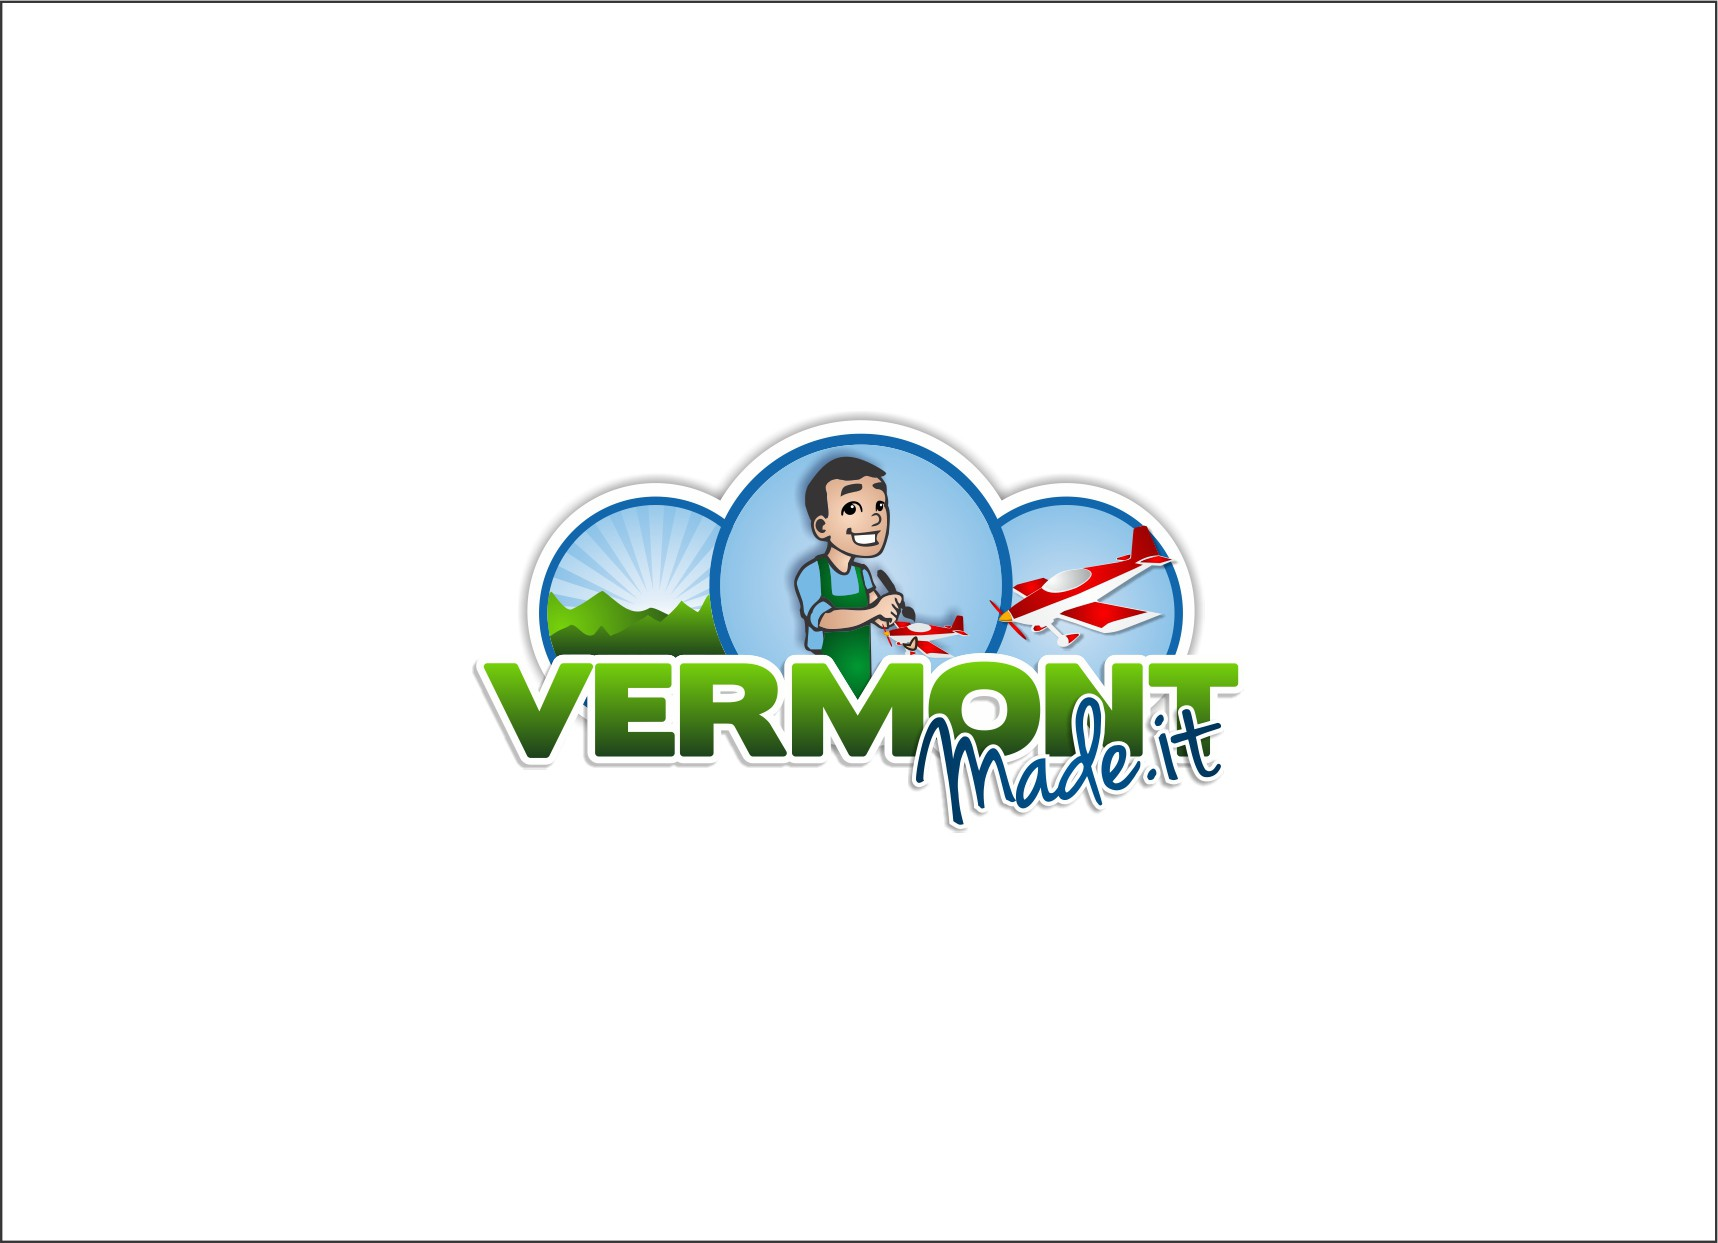 Vermont Made It needs a new logo